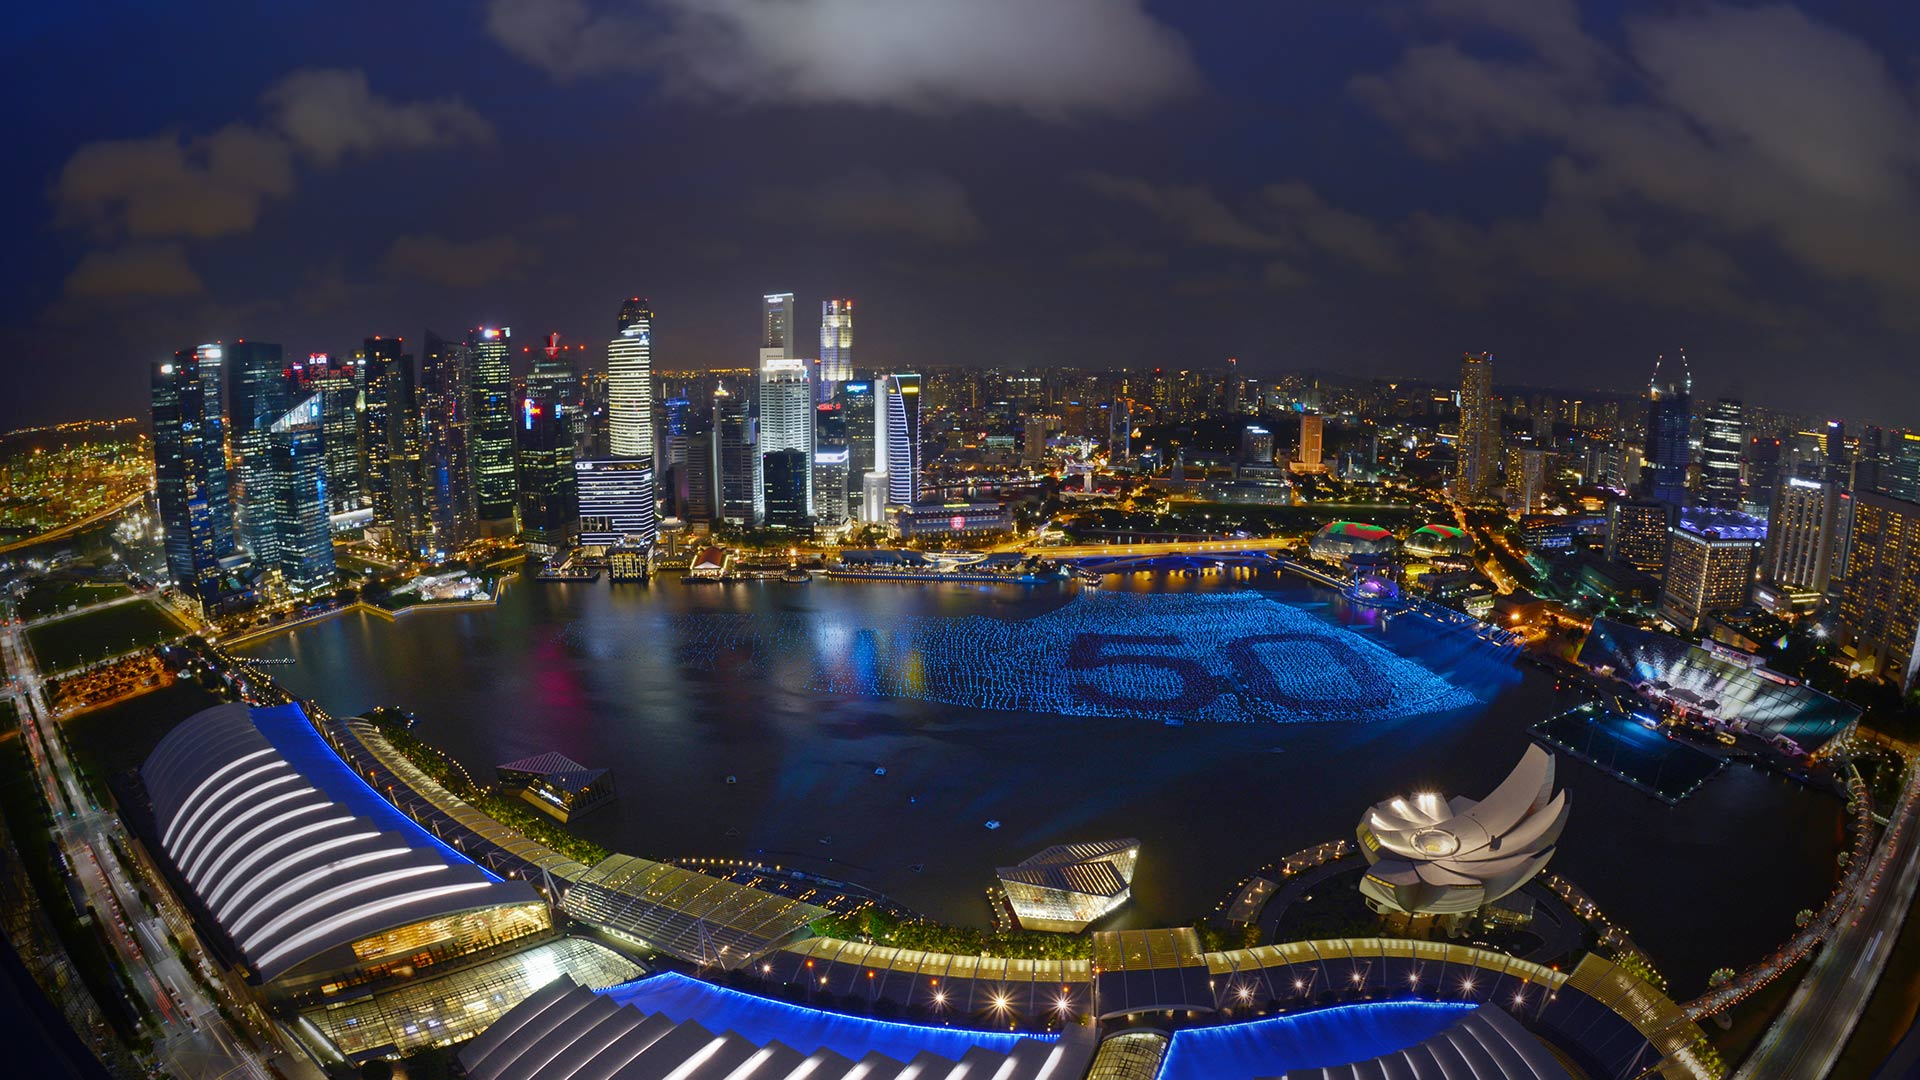 Singapore Fifty